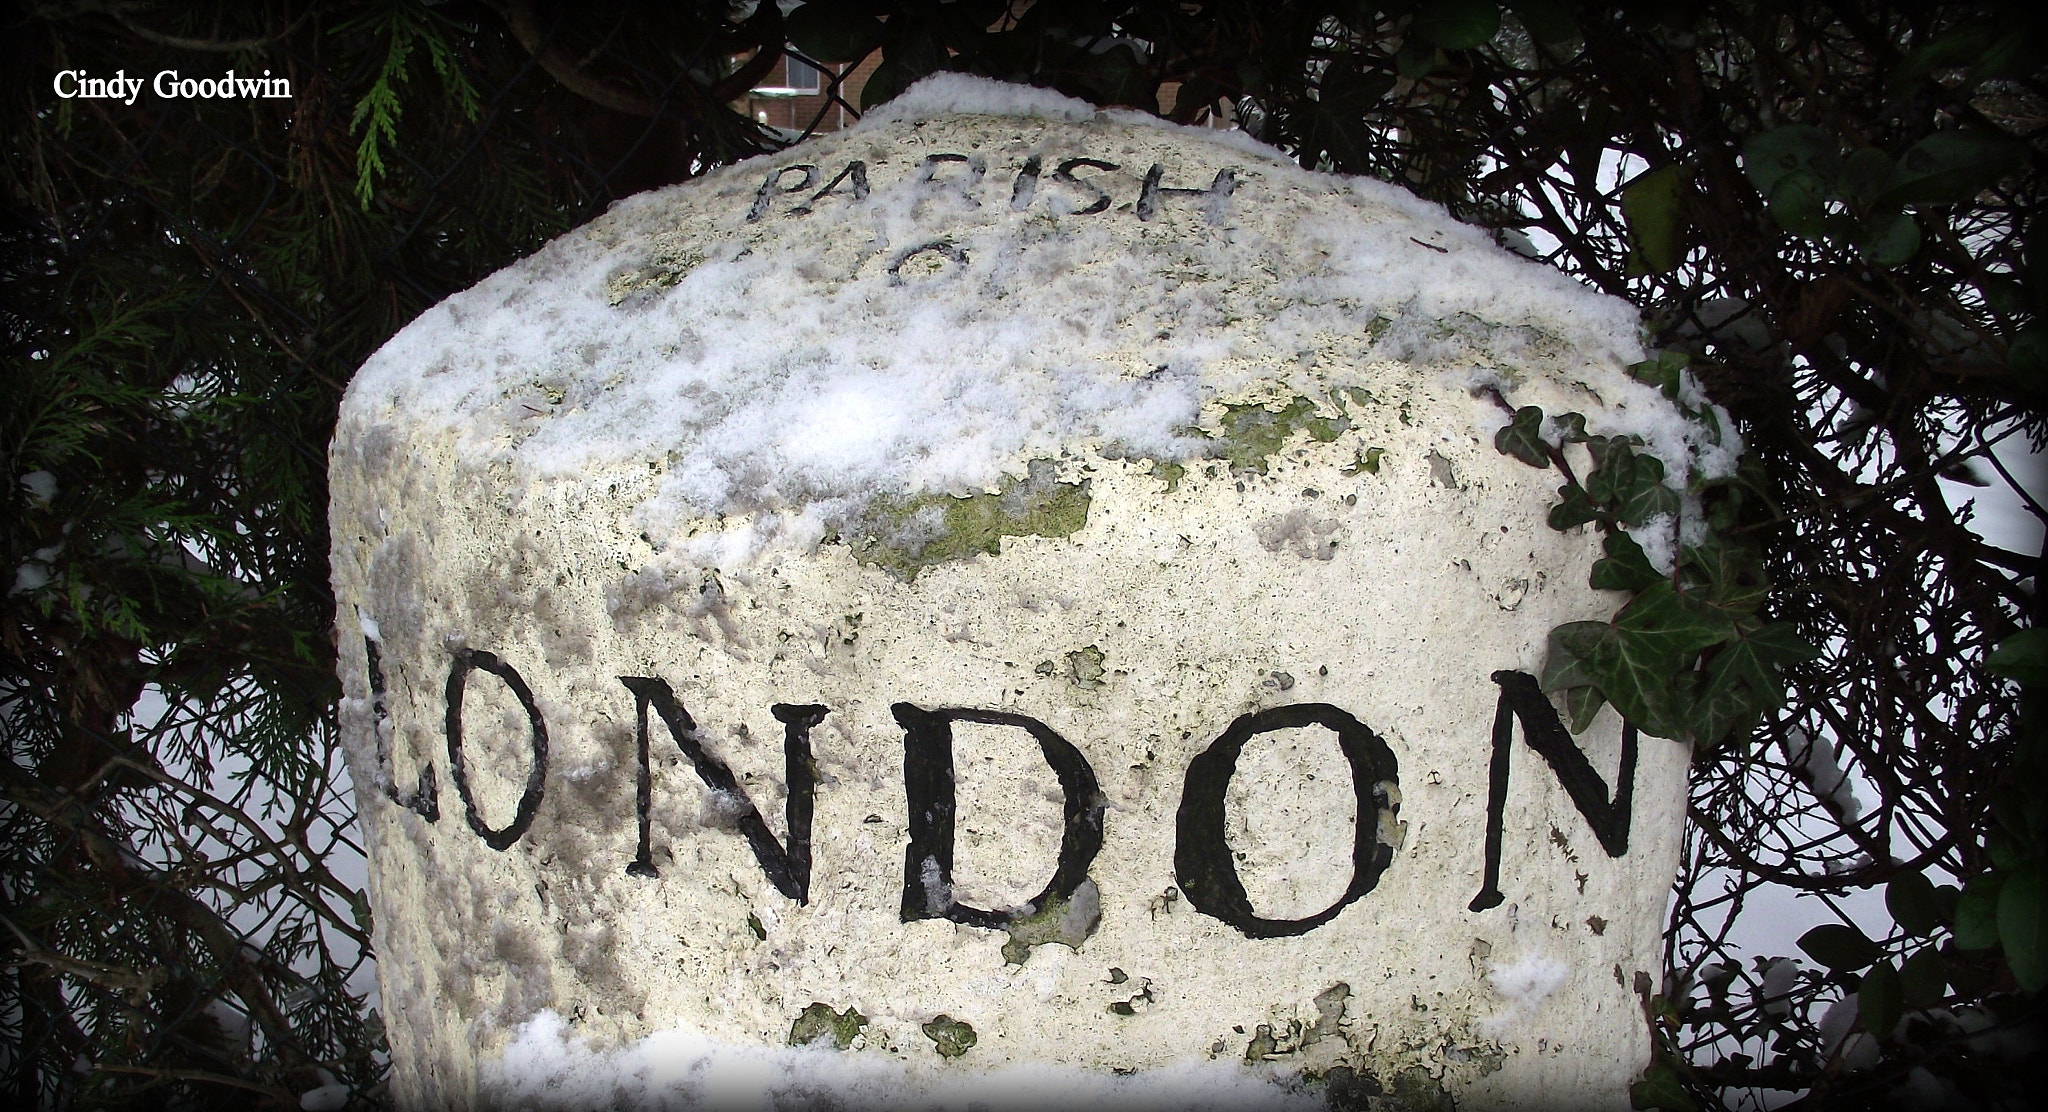 Photograph Lost London by Cindy Goodwin on 500px